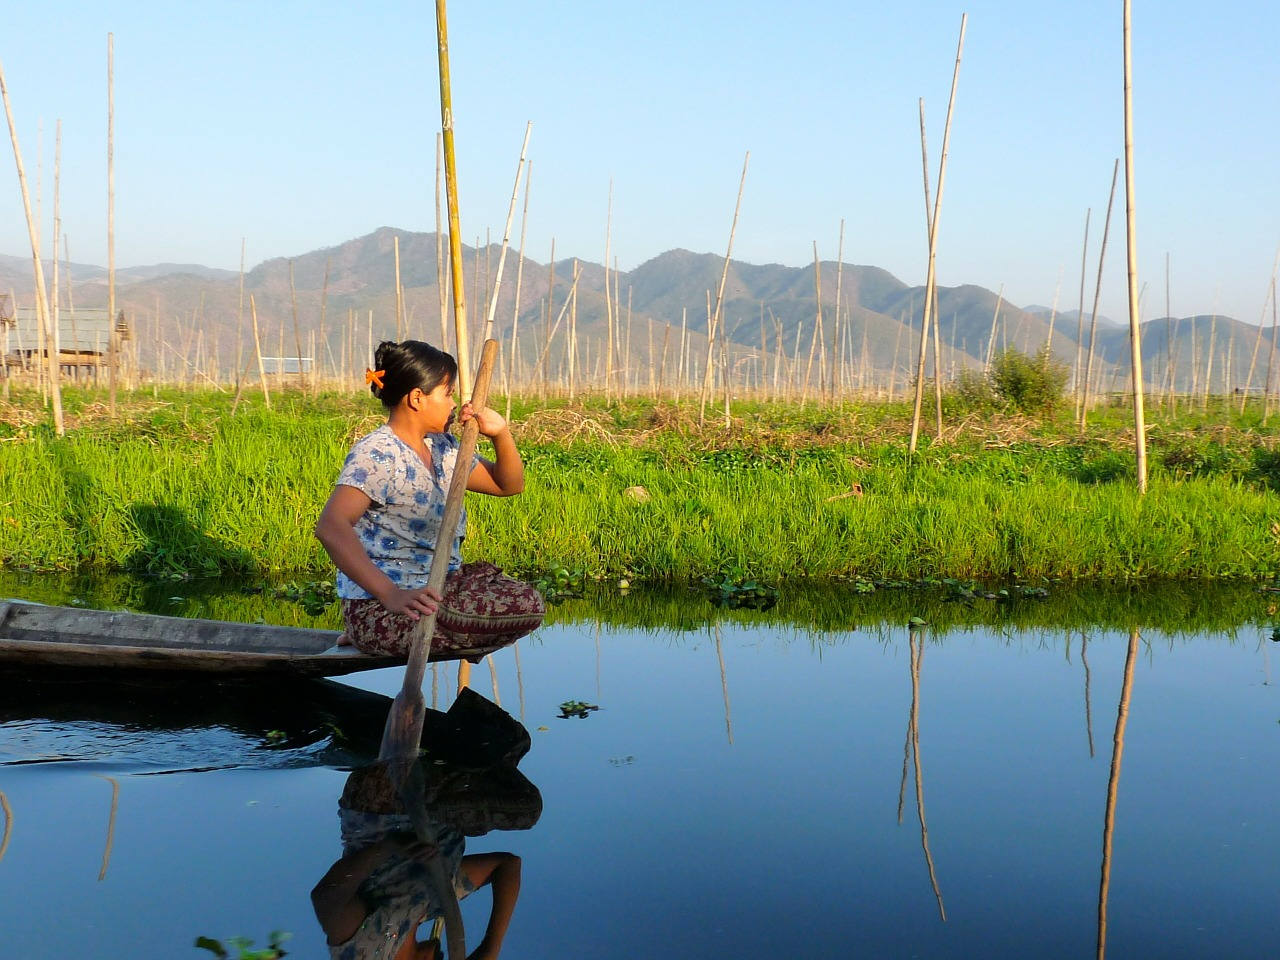 fisherman inle lake burma free photo